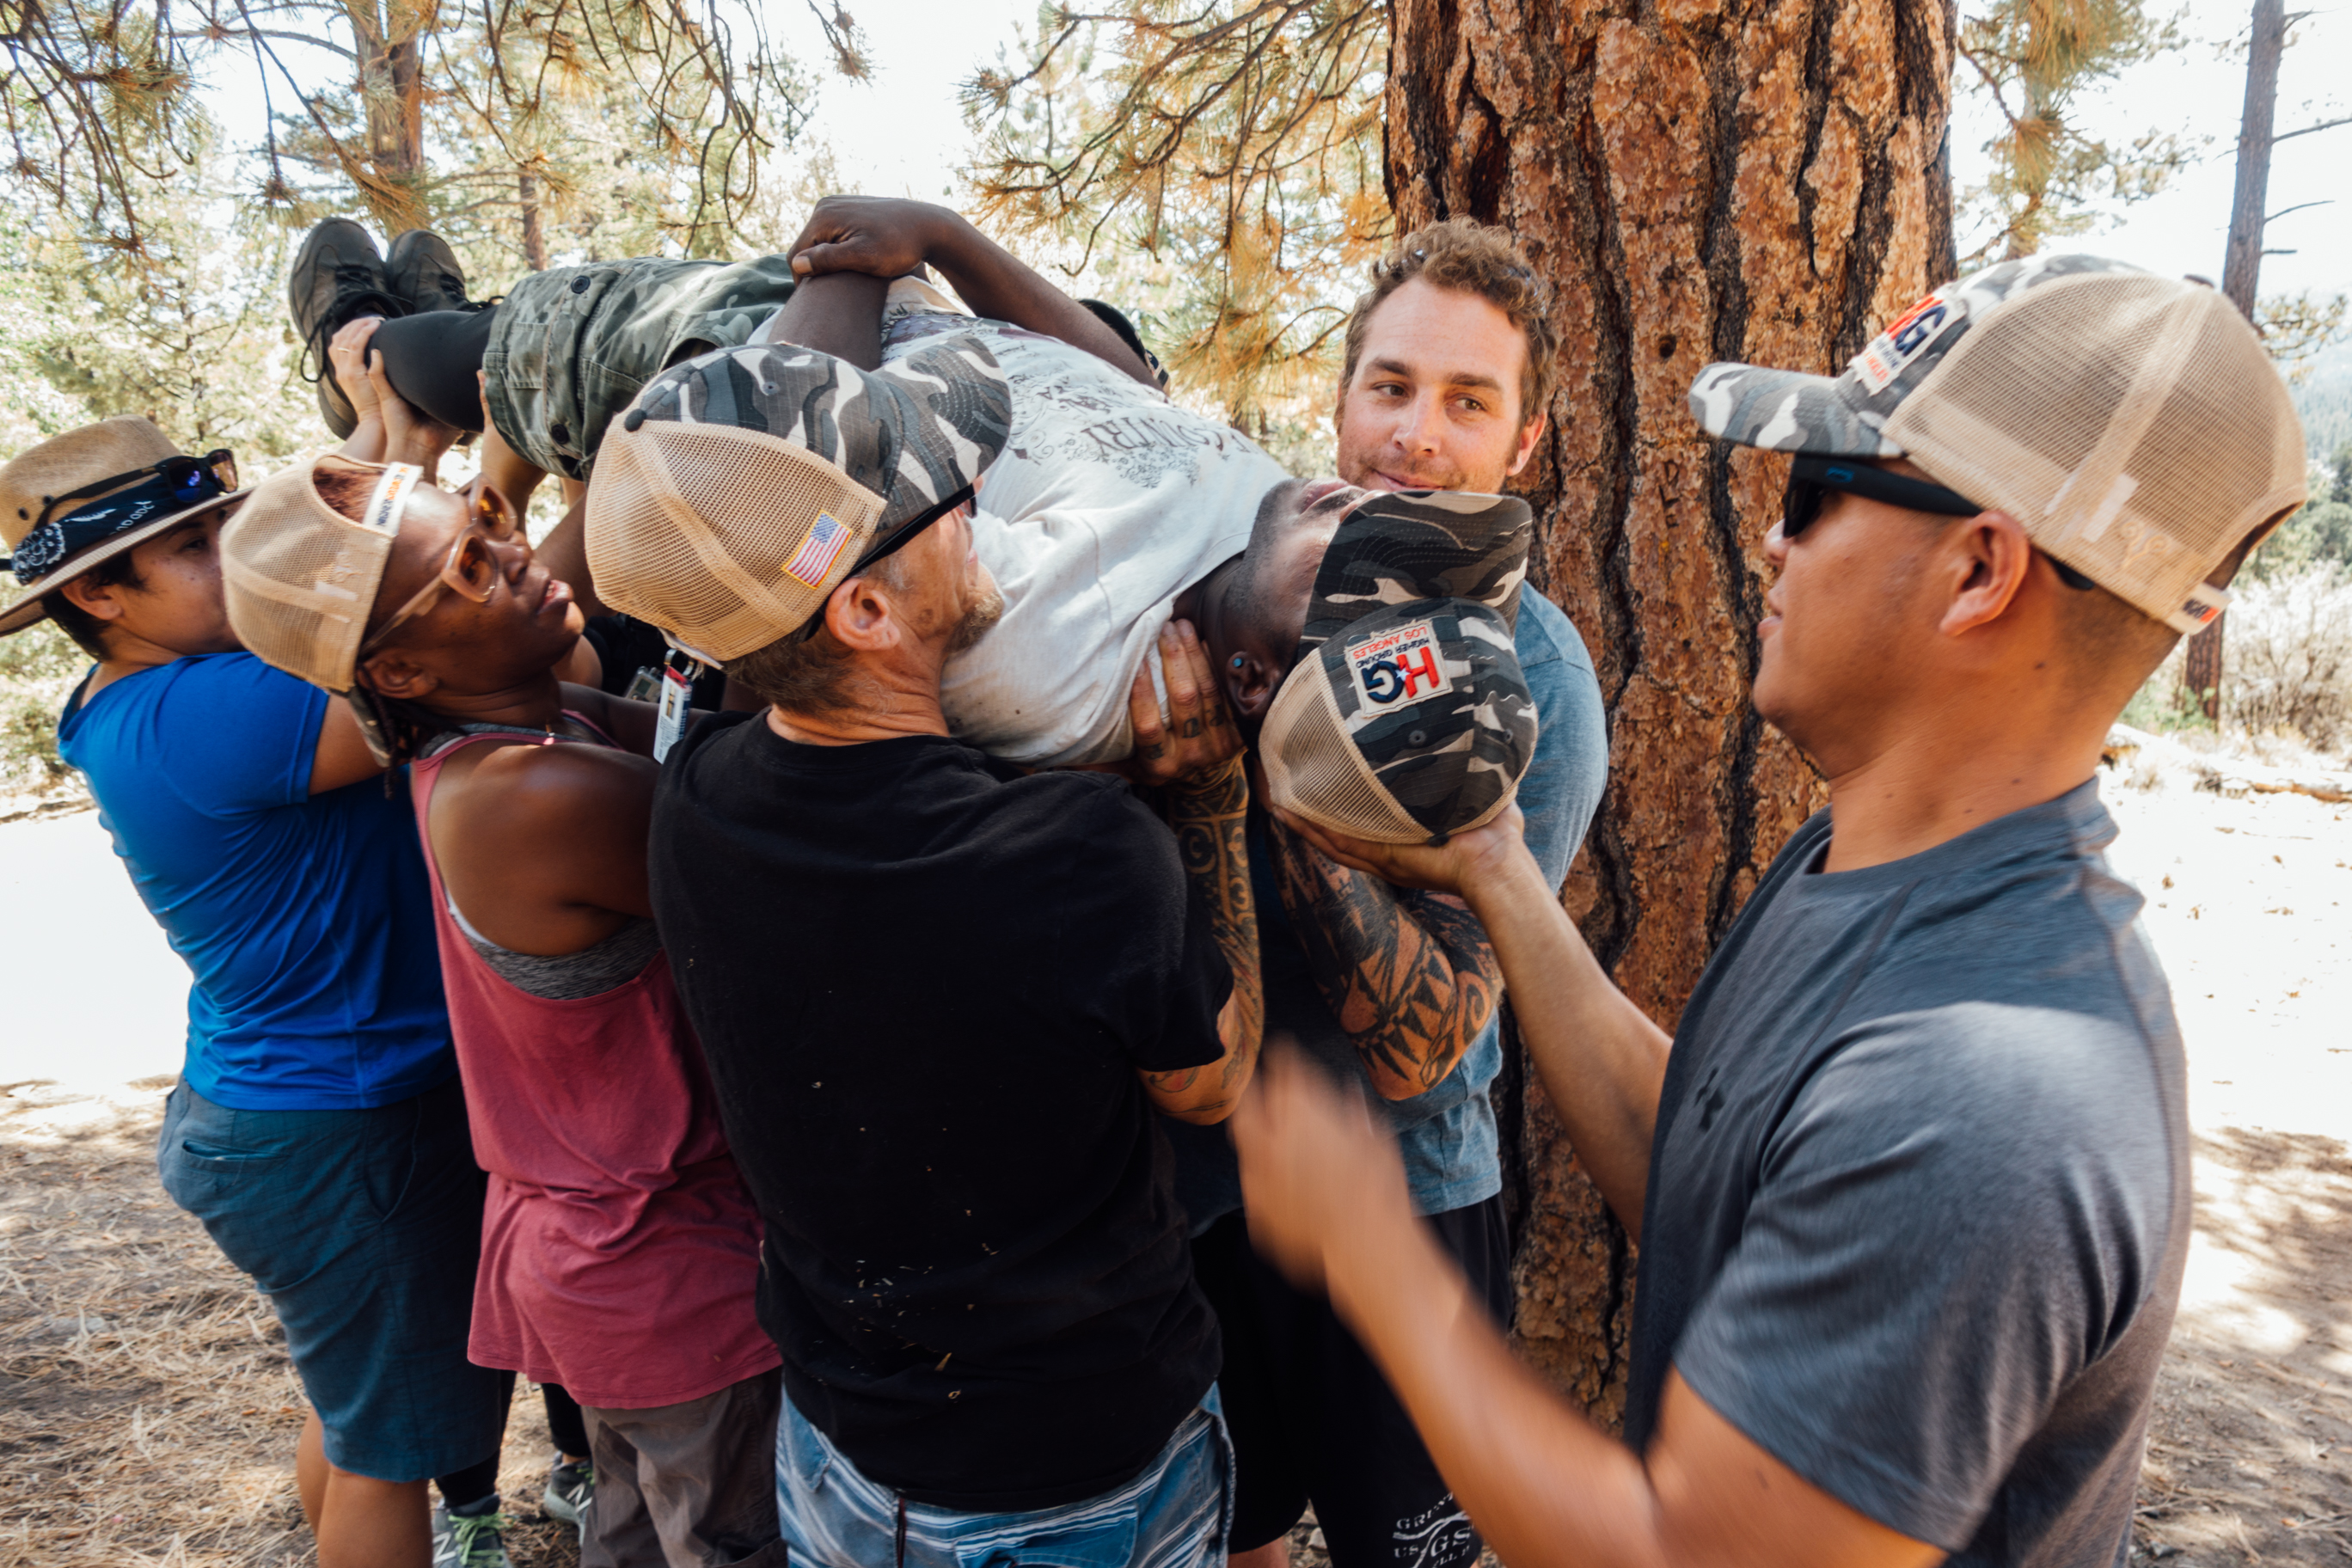 Caption: Jesus Guzmán (right) and fellow Higher Ground veterans participate in a team-building exercise during a hike in Big Bear, Cal., Credit: Libby Denkmann/American Homefront